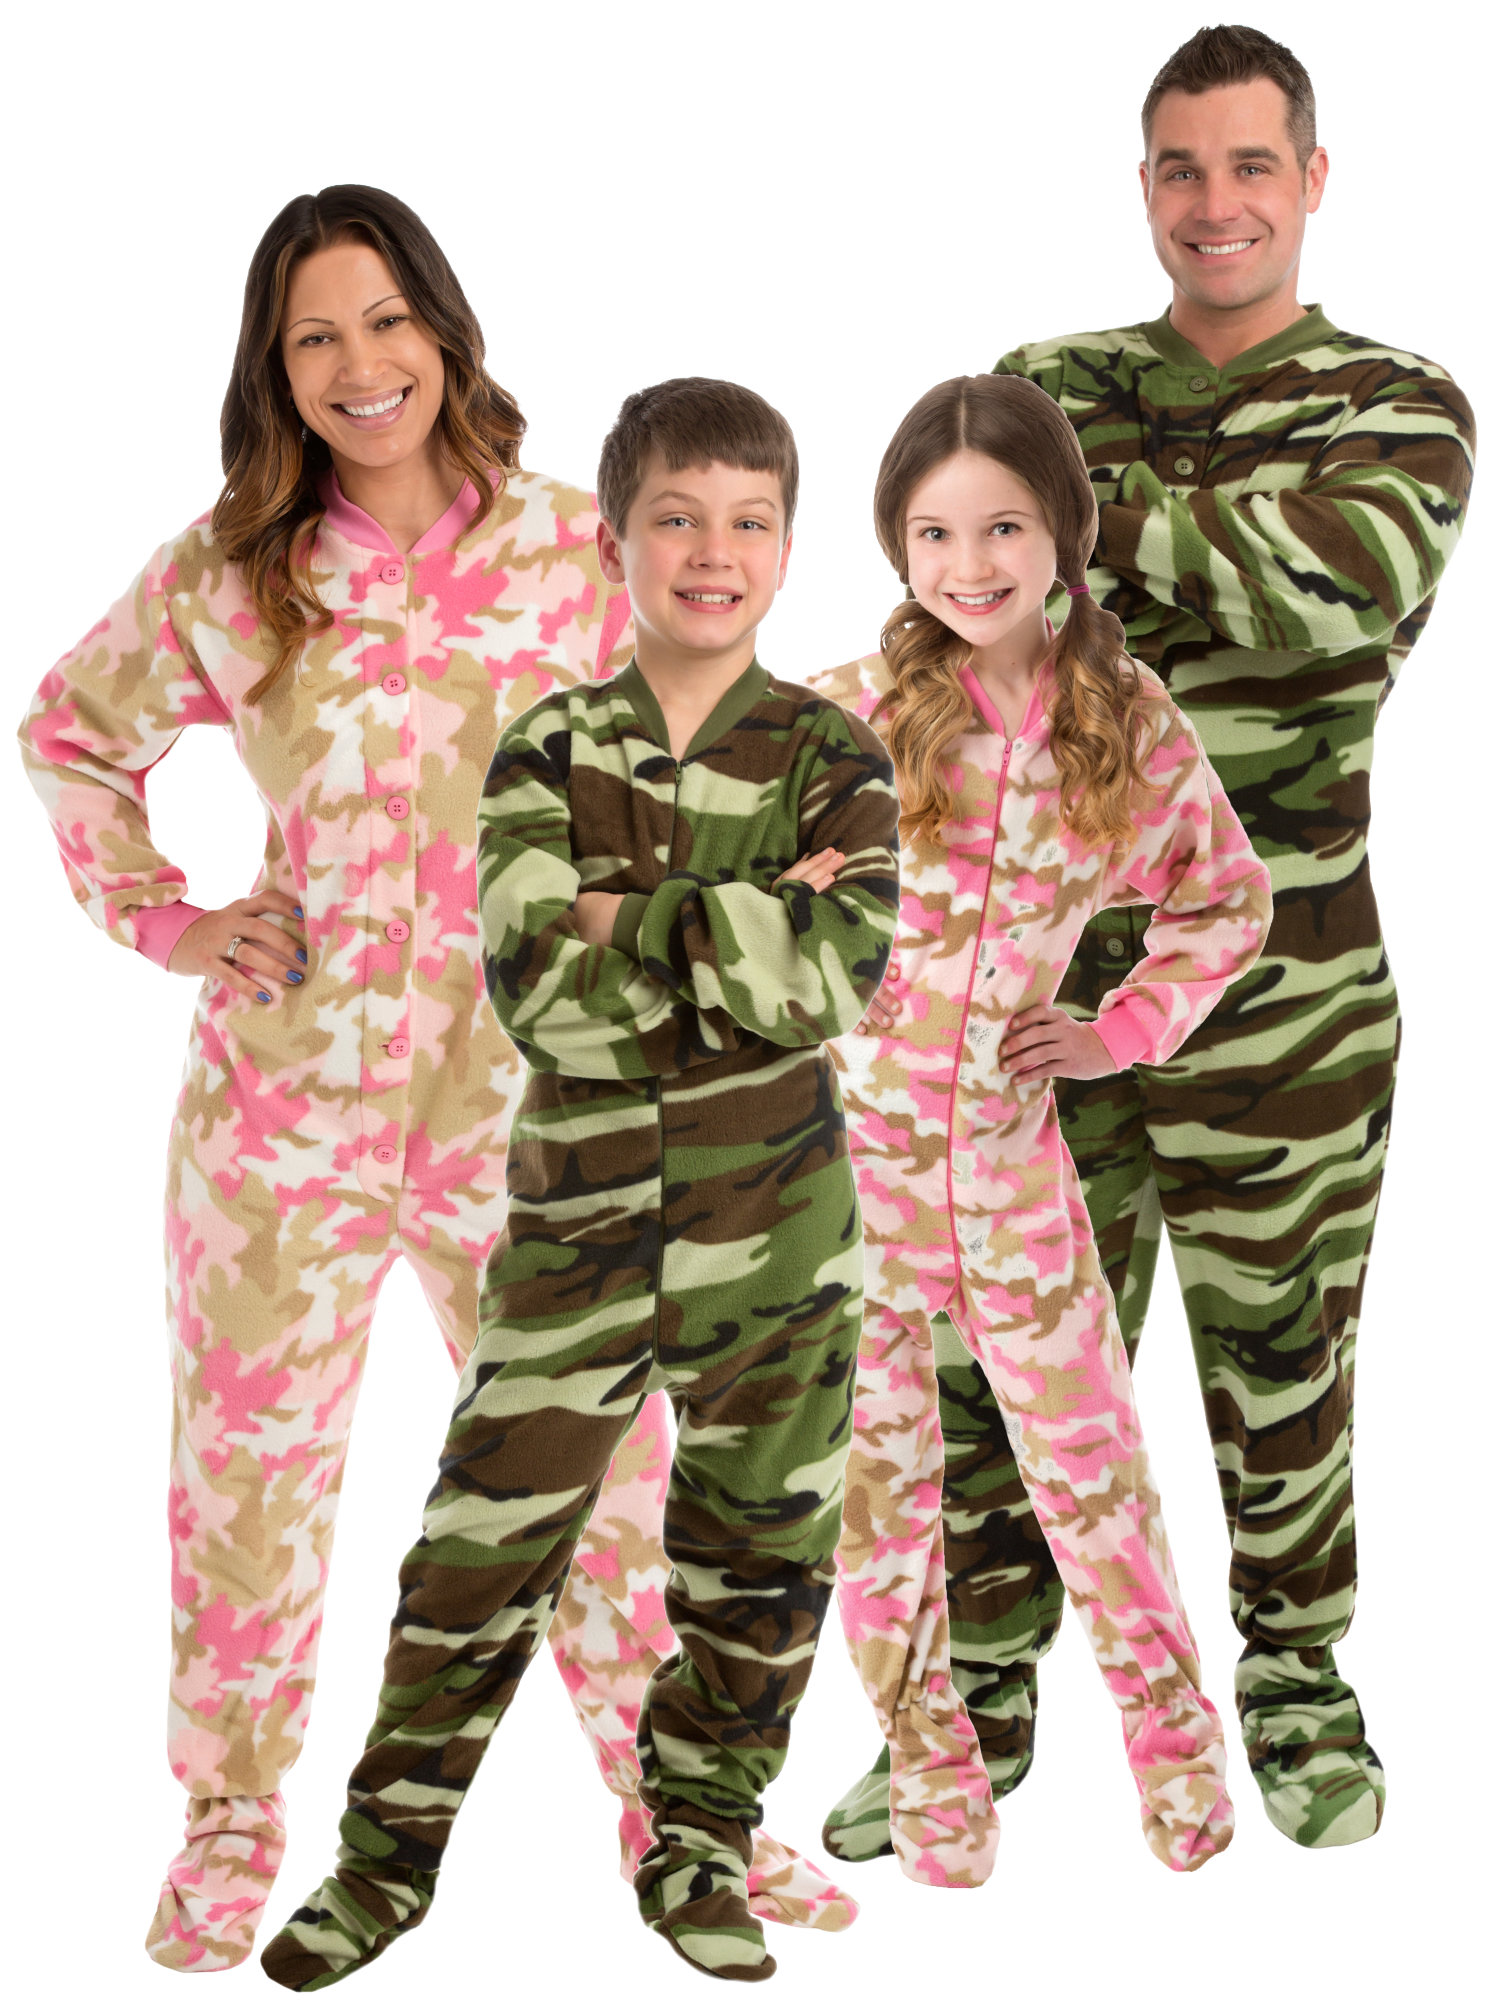 fa72bfedb59e Big Feet Pajamas - Big Feet Pjs Big Girls Pink Camo Kids Footed Pajamas One  Piece Sleeper - Walmart.com